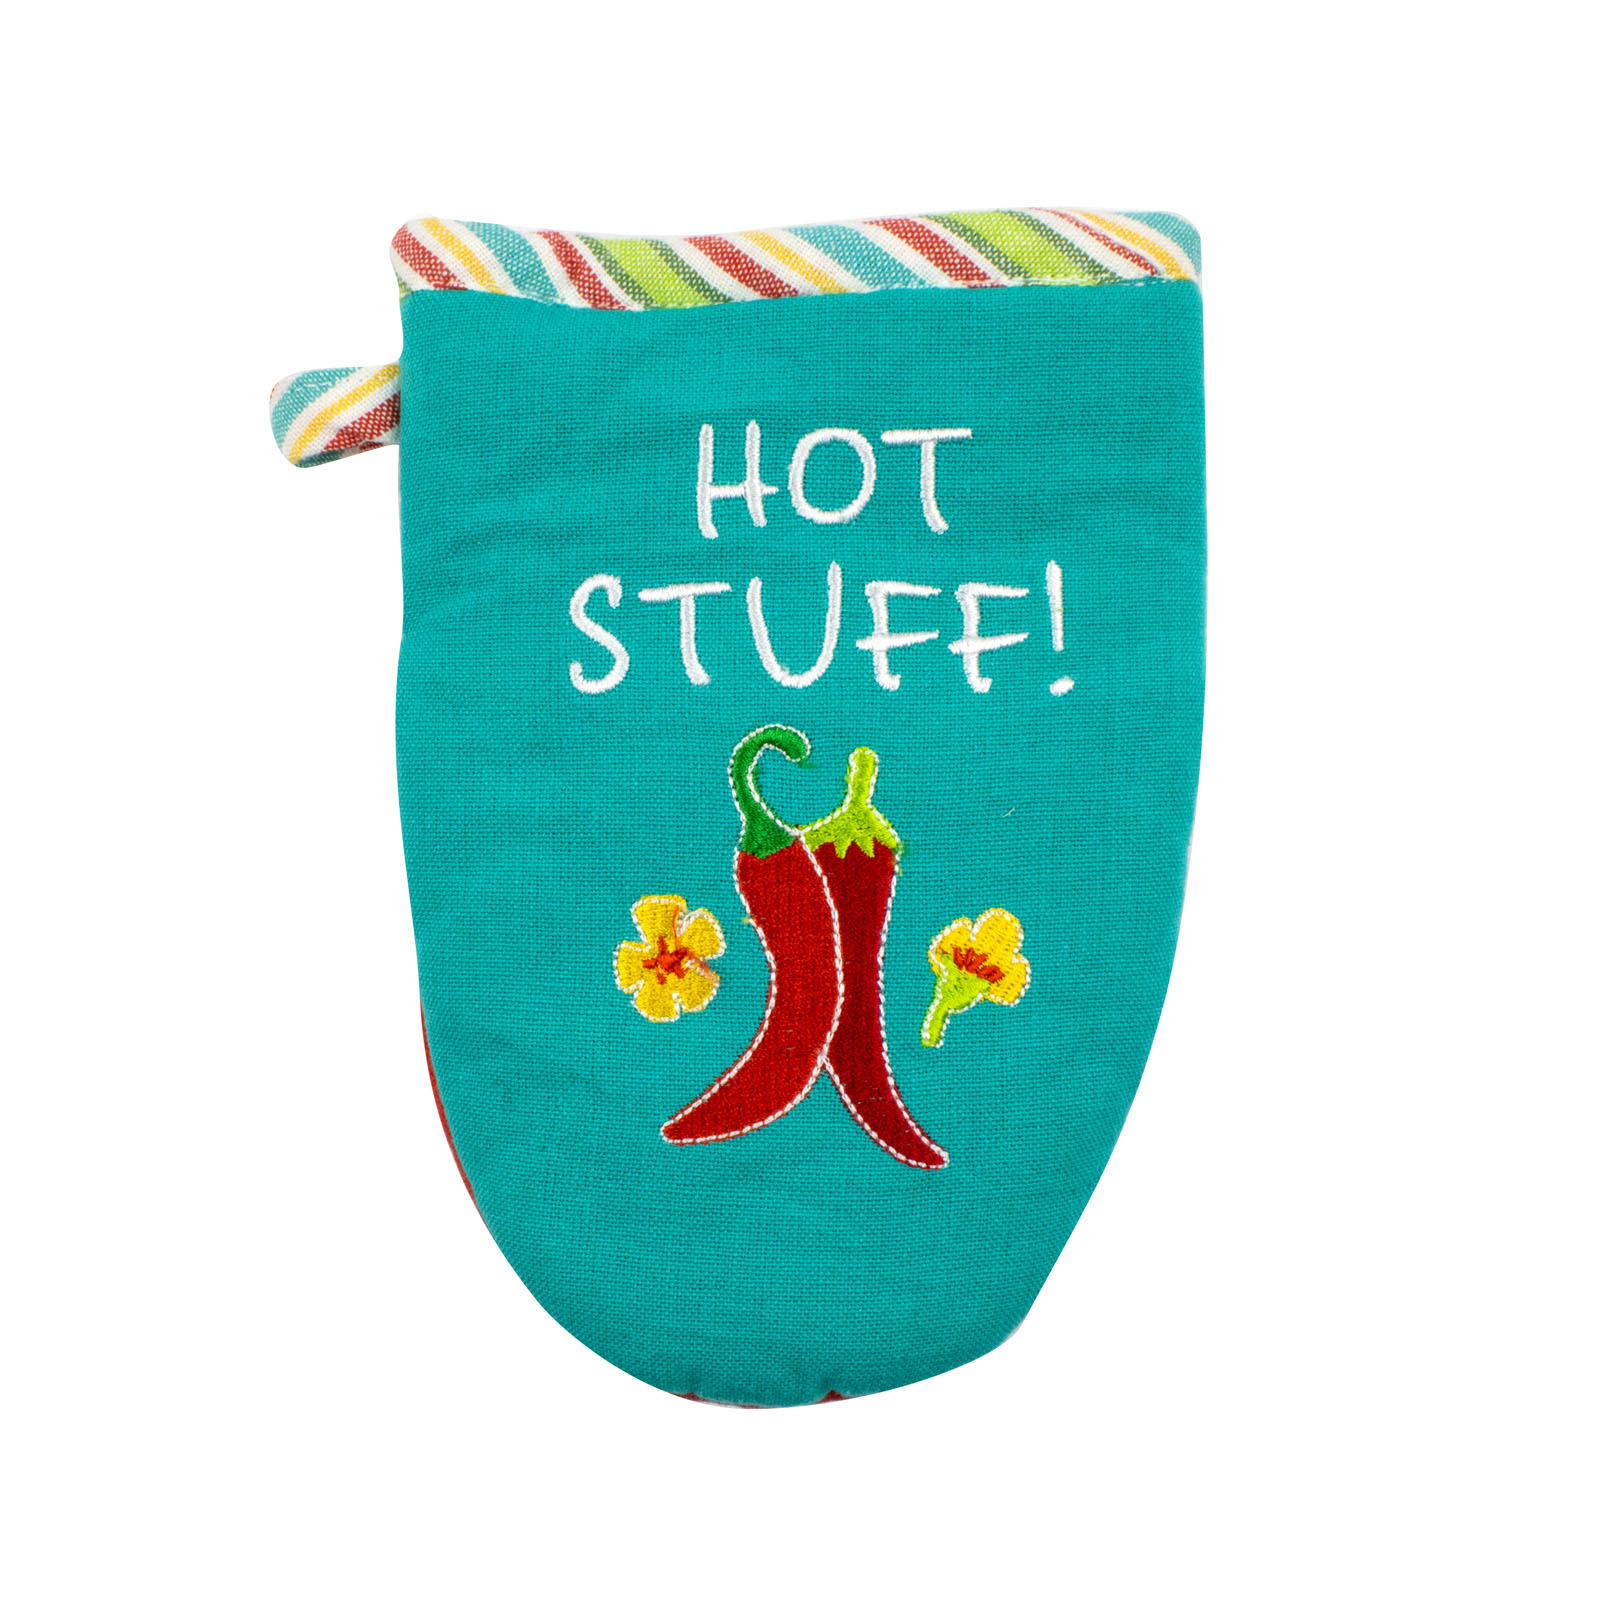 Hot Stuff! Cotton Oven Mitt